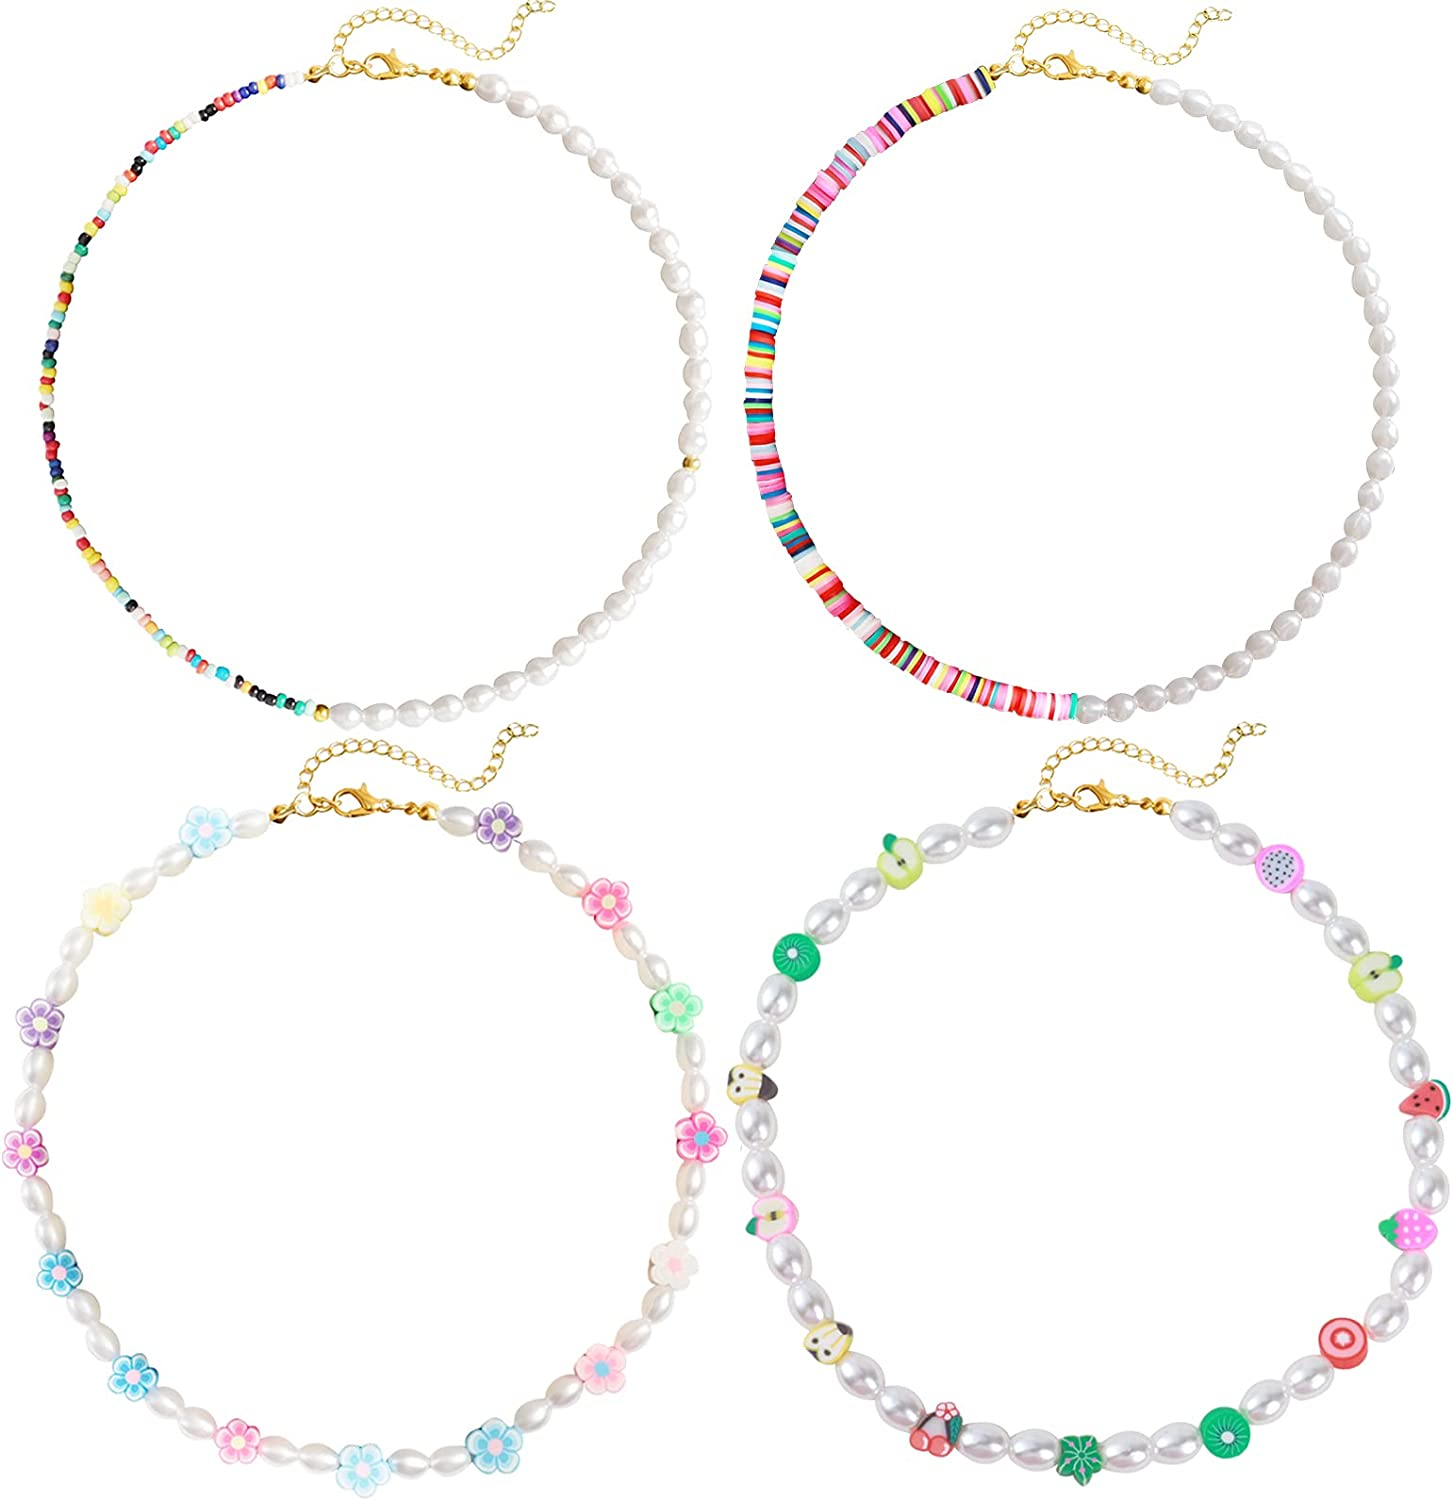 4Pcs Y2K Beaded Choker Necklaces for Women Colorful Bead Face Pearl Necklace for Girls (4 Colorful Necklaces)